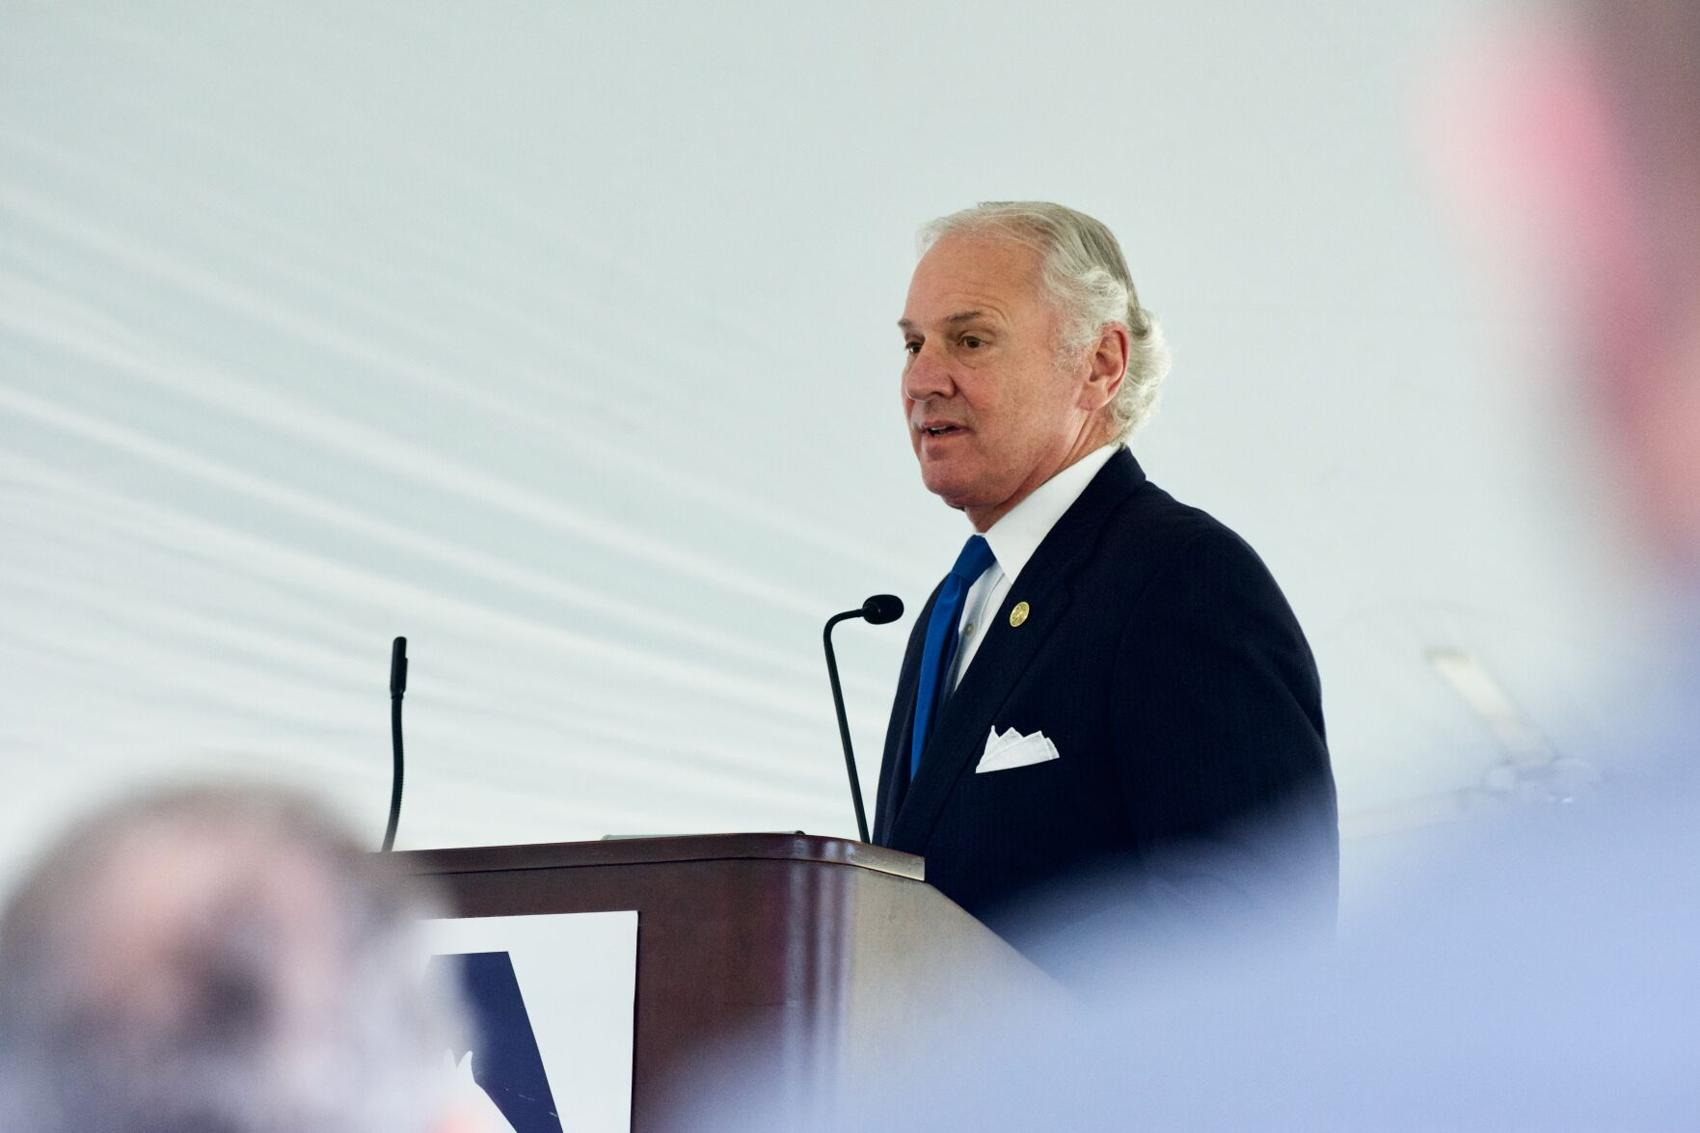 POST AND COURIER – Gov. McMaster says new SC small business grants may be 'final chance' for COVID-19 relief